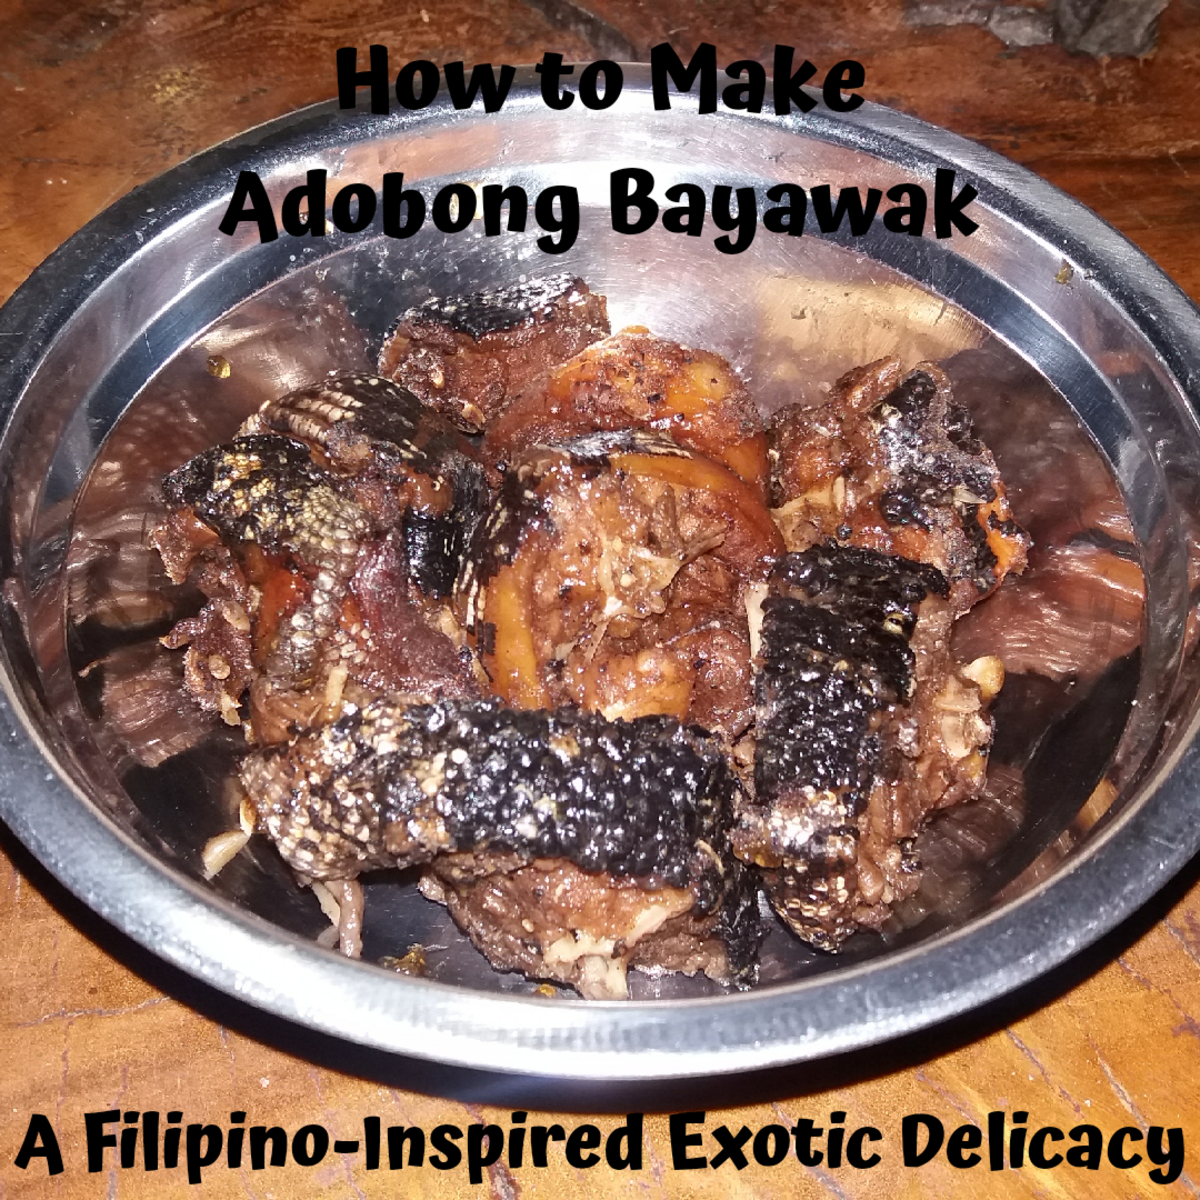 Learn how to make adobong bayawak: a Filipino-inspired exotic delicacy.